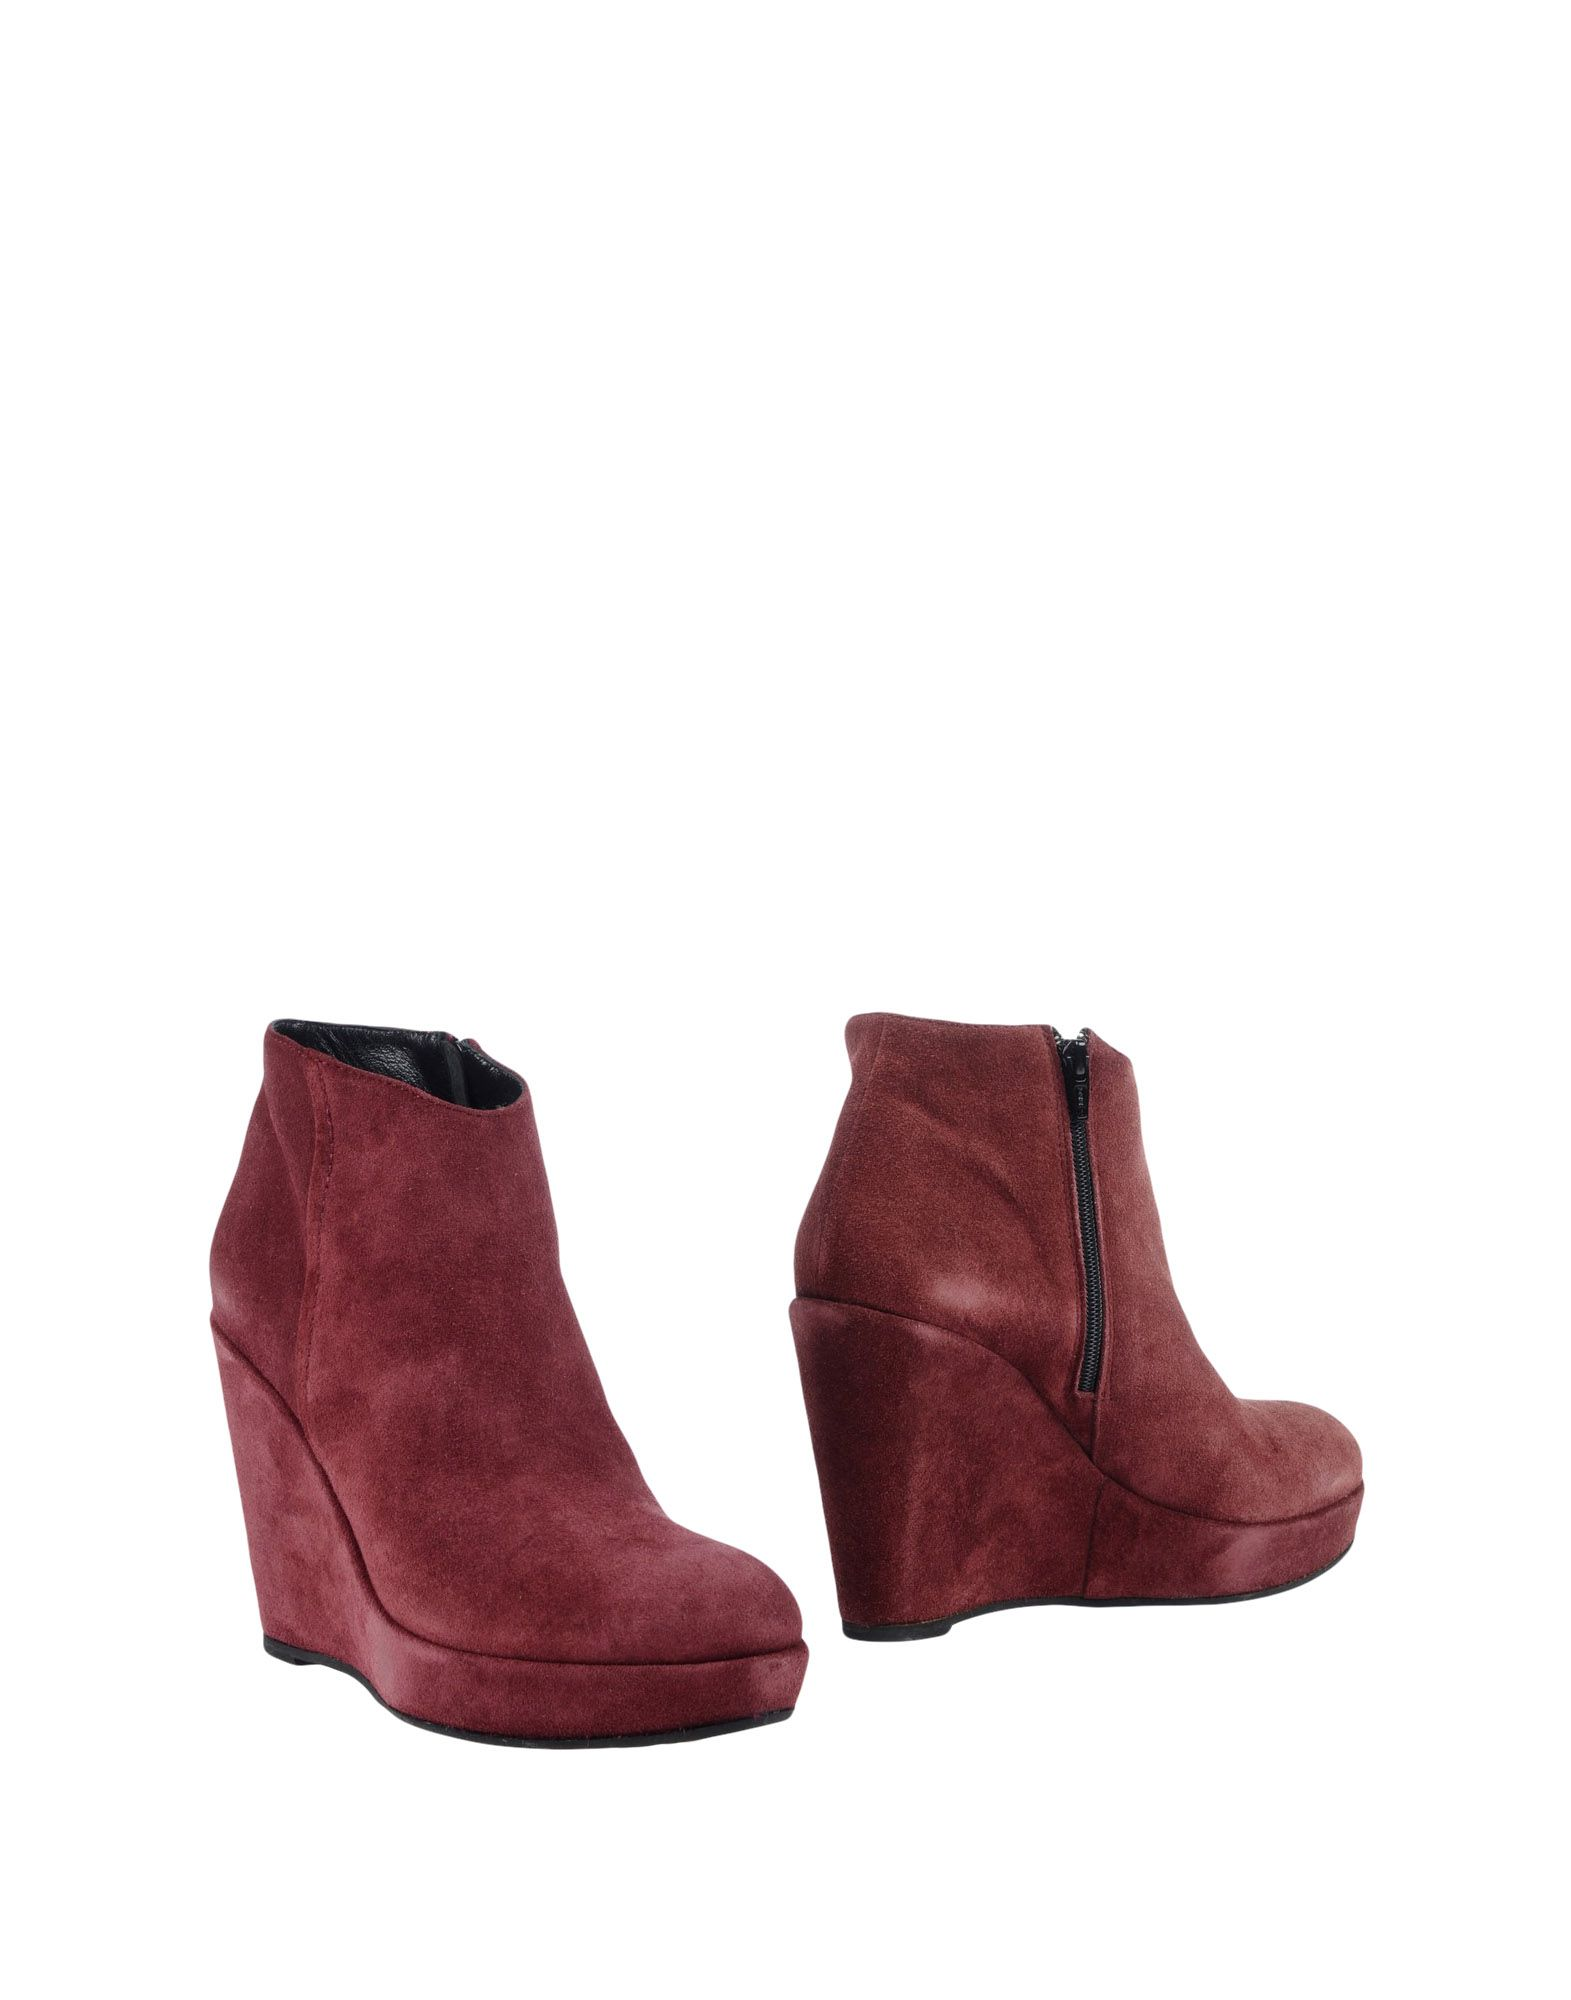 GAIA D'ESTE Ankle Boot in Maroon